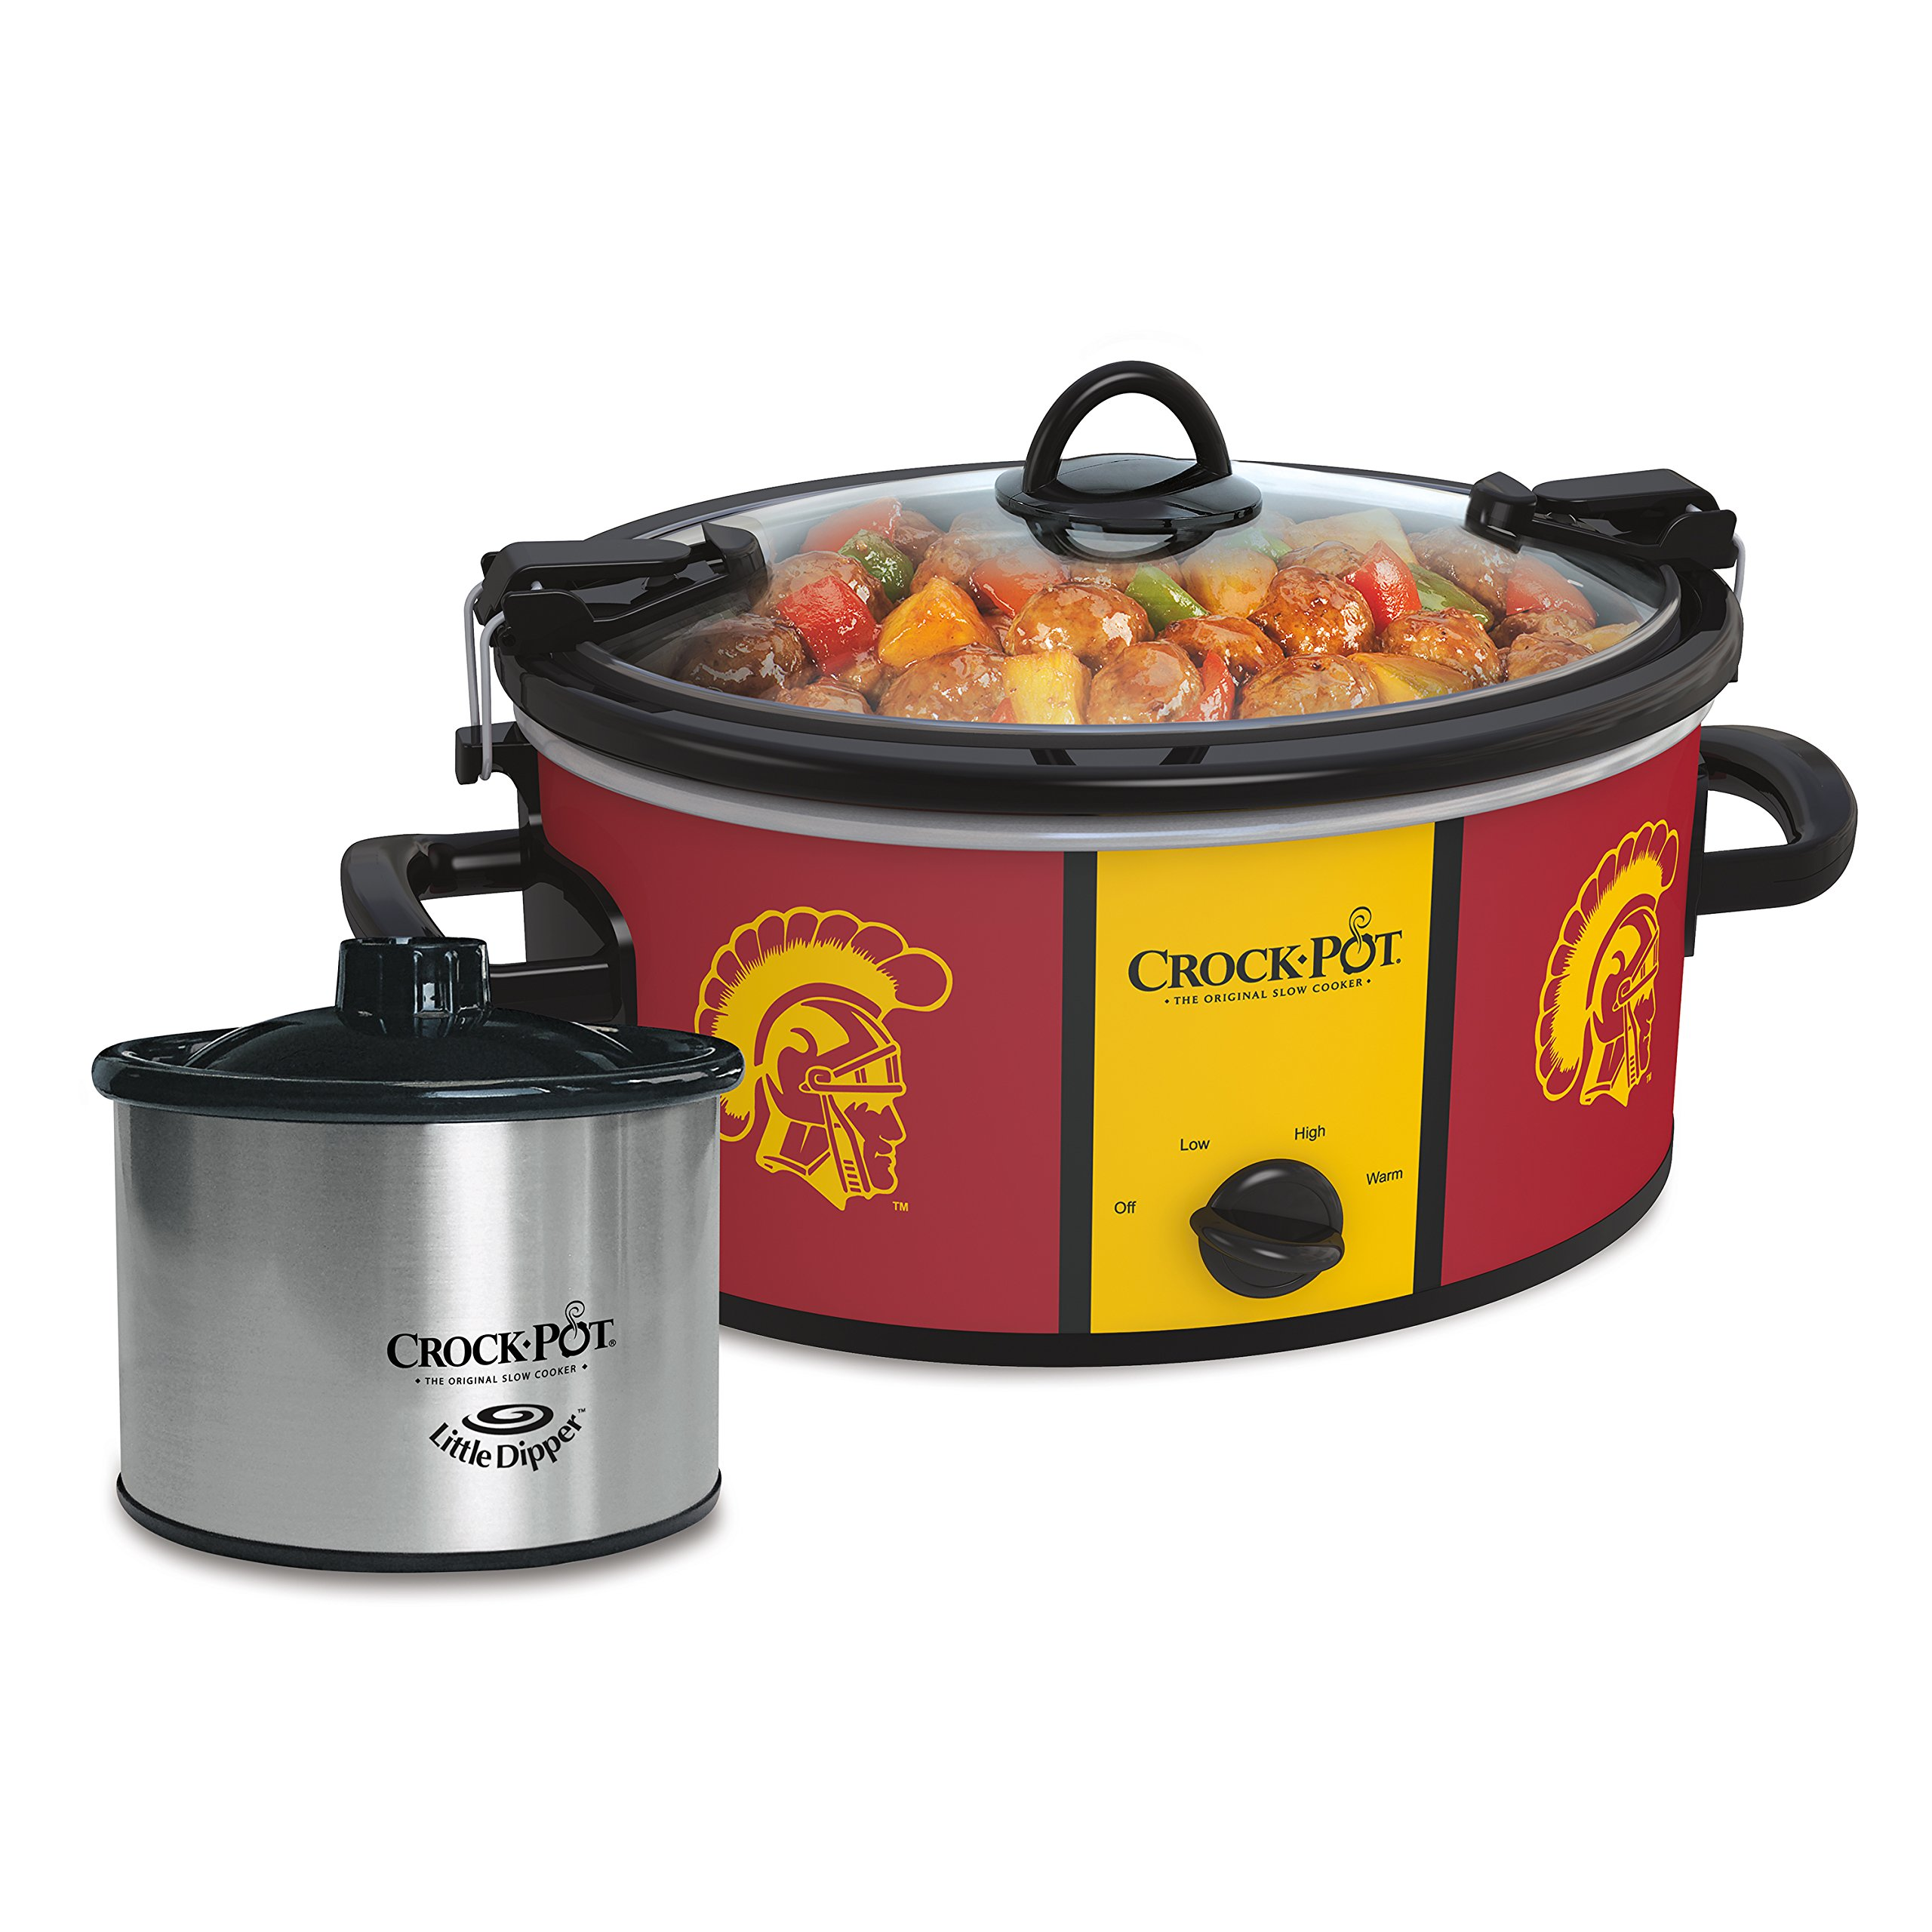 Crock-Pot University of Southern California Trojans Collegiate 6-Quart Cook & Carry Slow Cooker with Bonus 16-Oz. Little Dipper Food Warmer